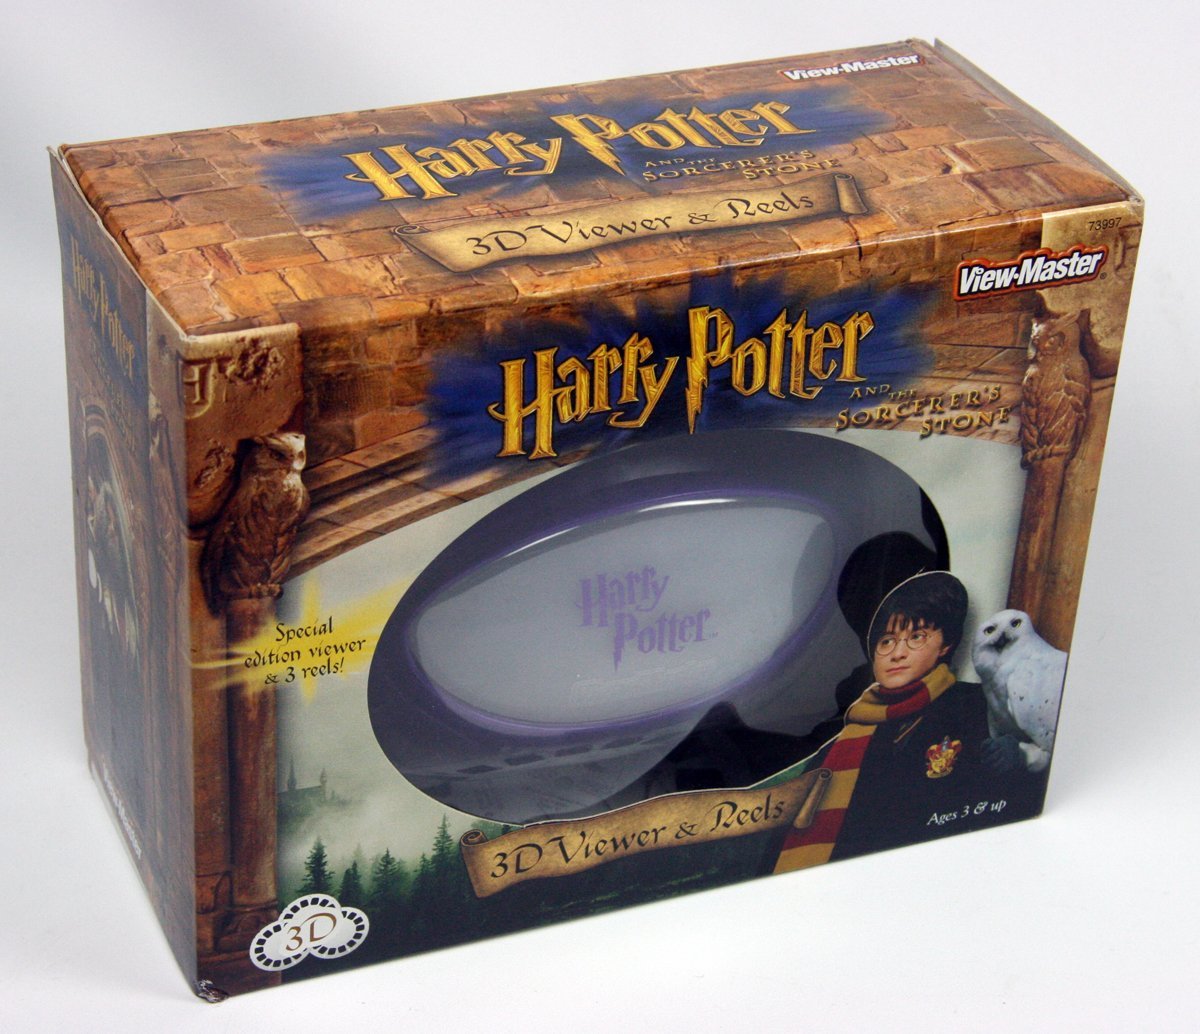 ViewMaster Gift Set Harry Potter - Sorcerer's Stone Virtual Viewer and 3 Reels